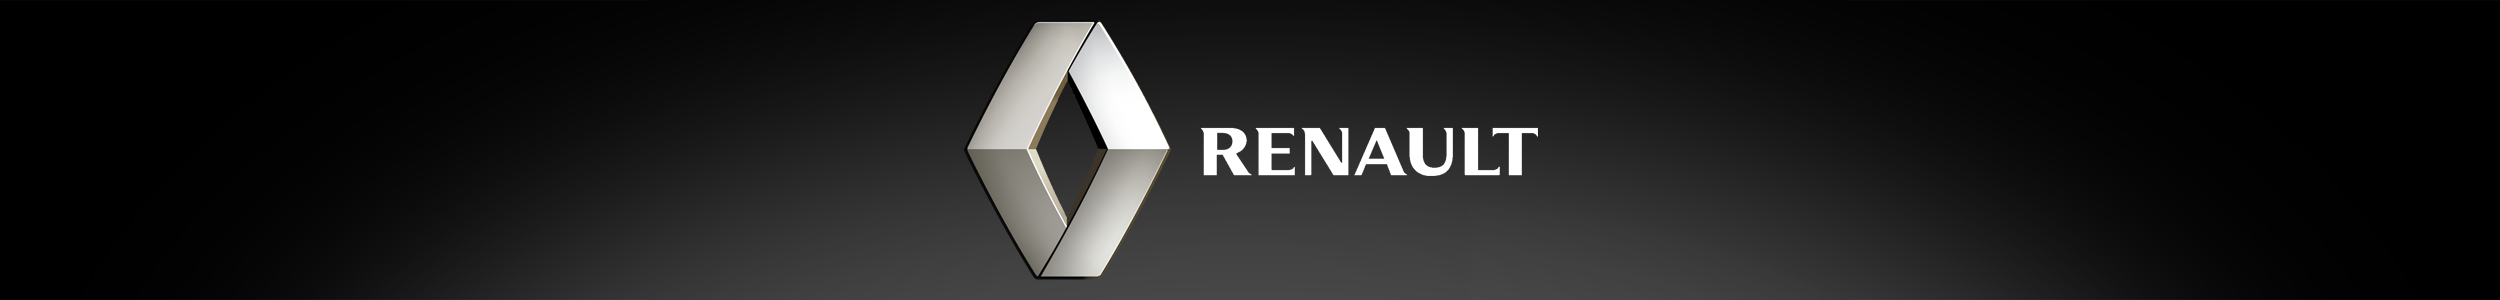 MB Lock & Key Auto Locksmiths | Renault Car Keys - Reprogrammed or Replaced in Norwich, Norfolk